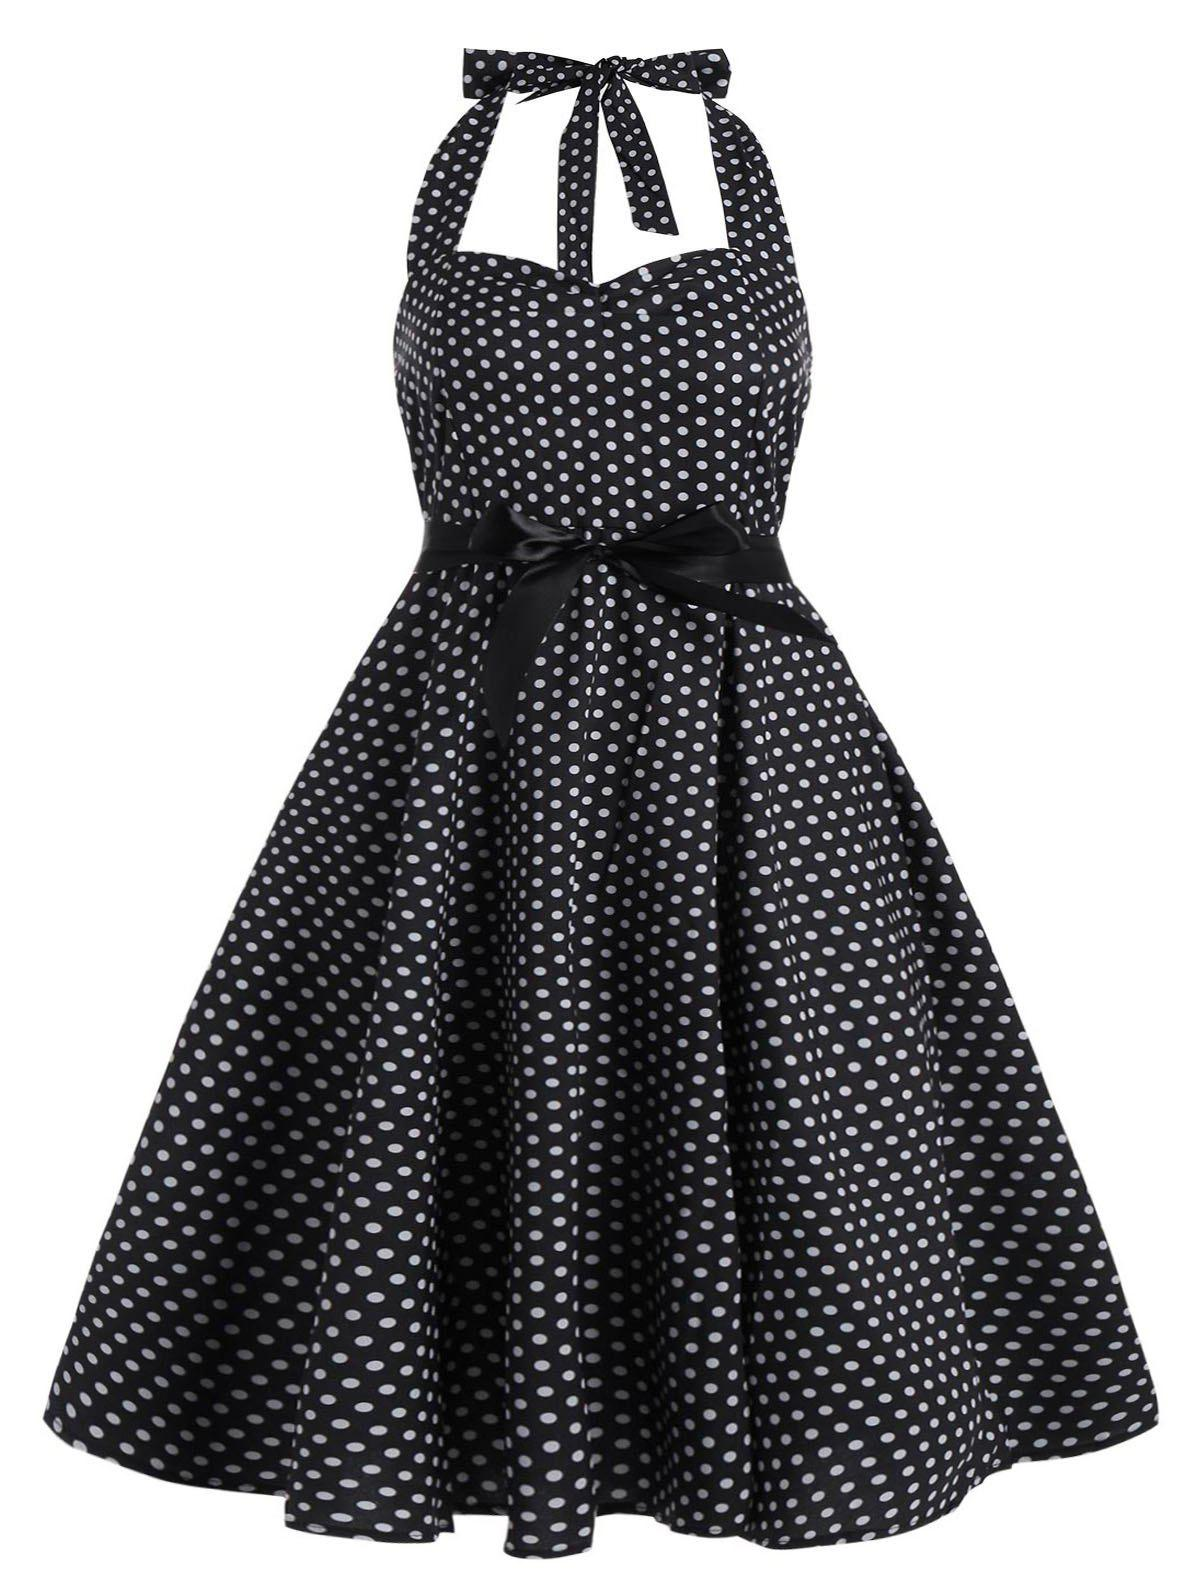 Polka Dot Plus Size Halter Vintage Dress - BLACK 3XL